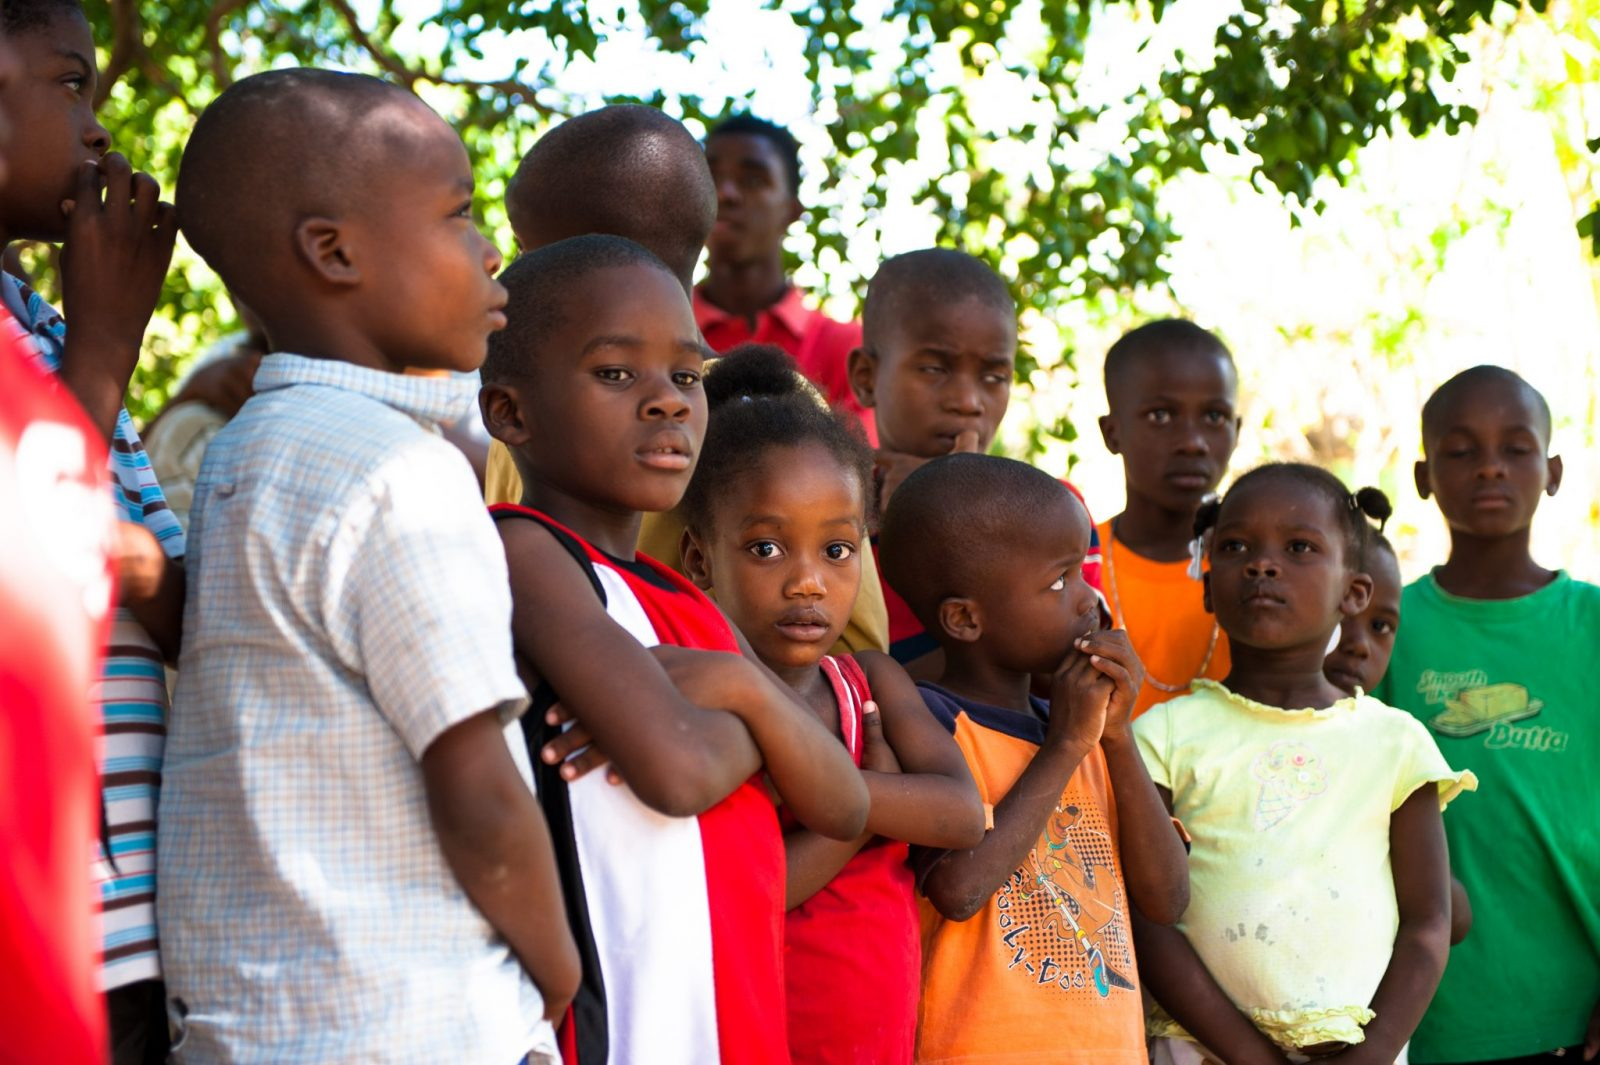 Cause Catering & Coffee Business Gives Back To Kids In Haiti